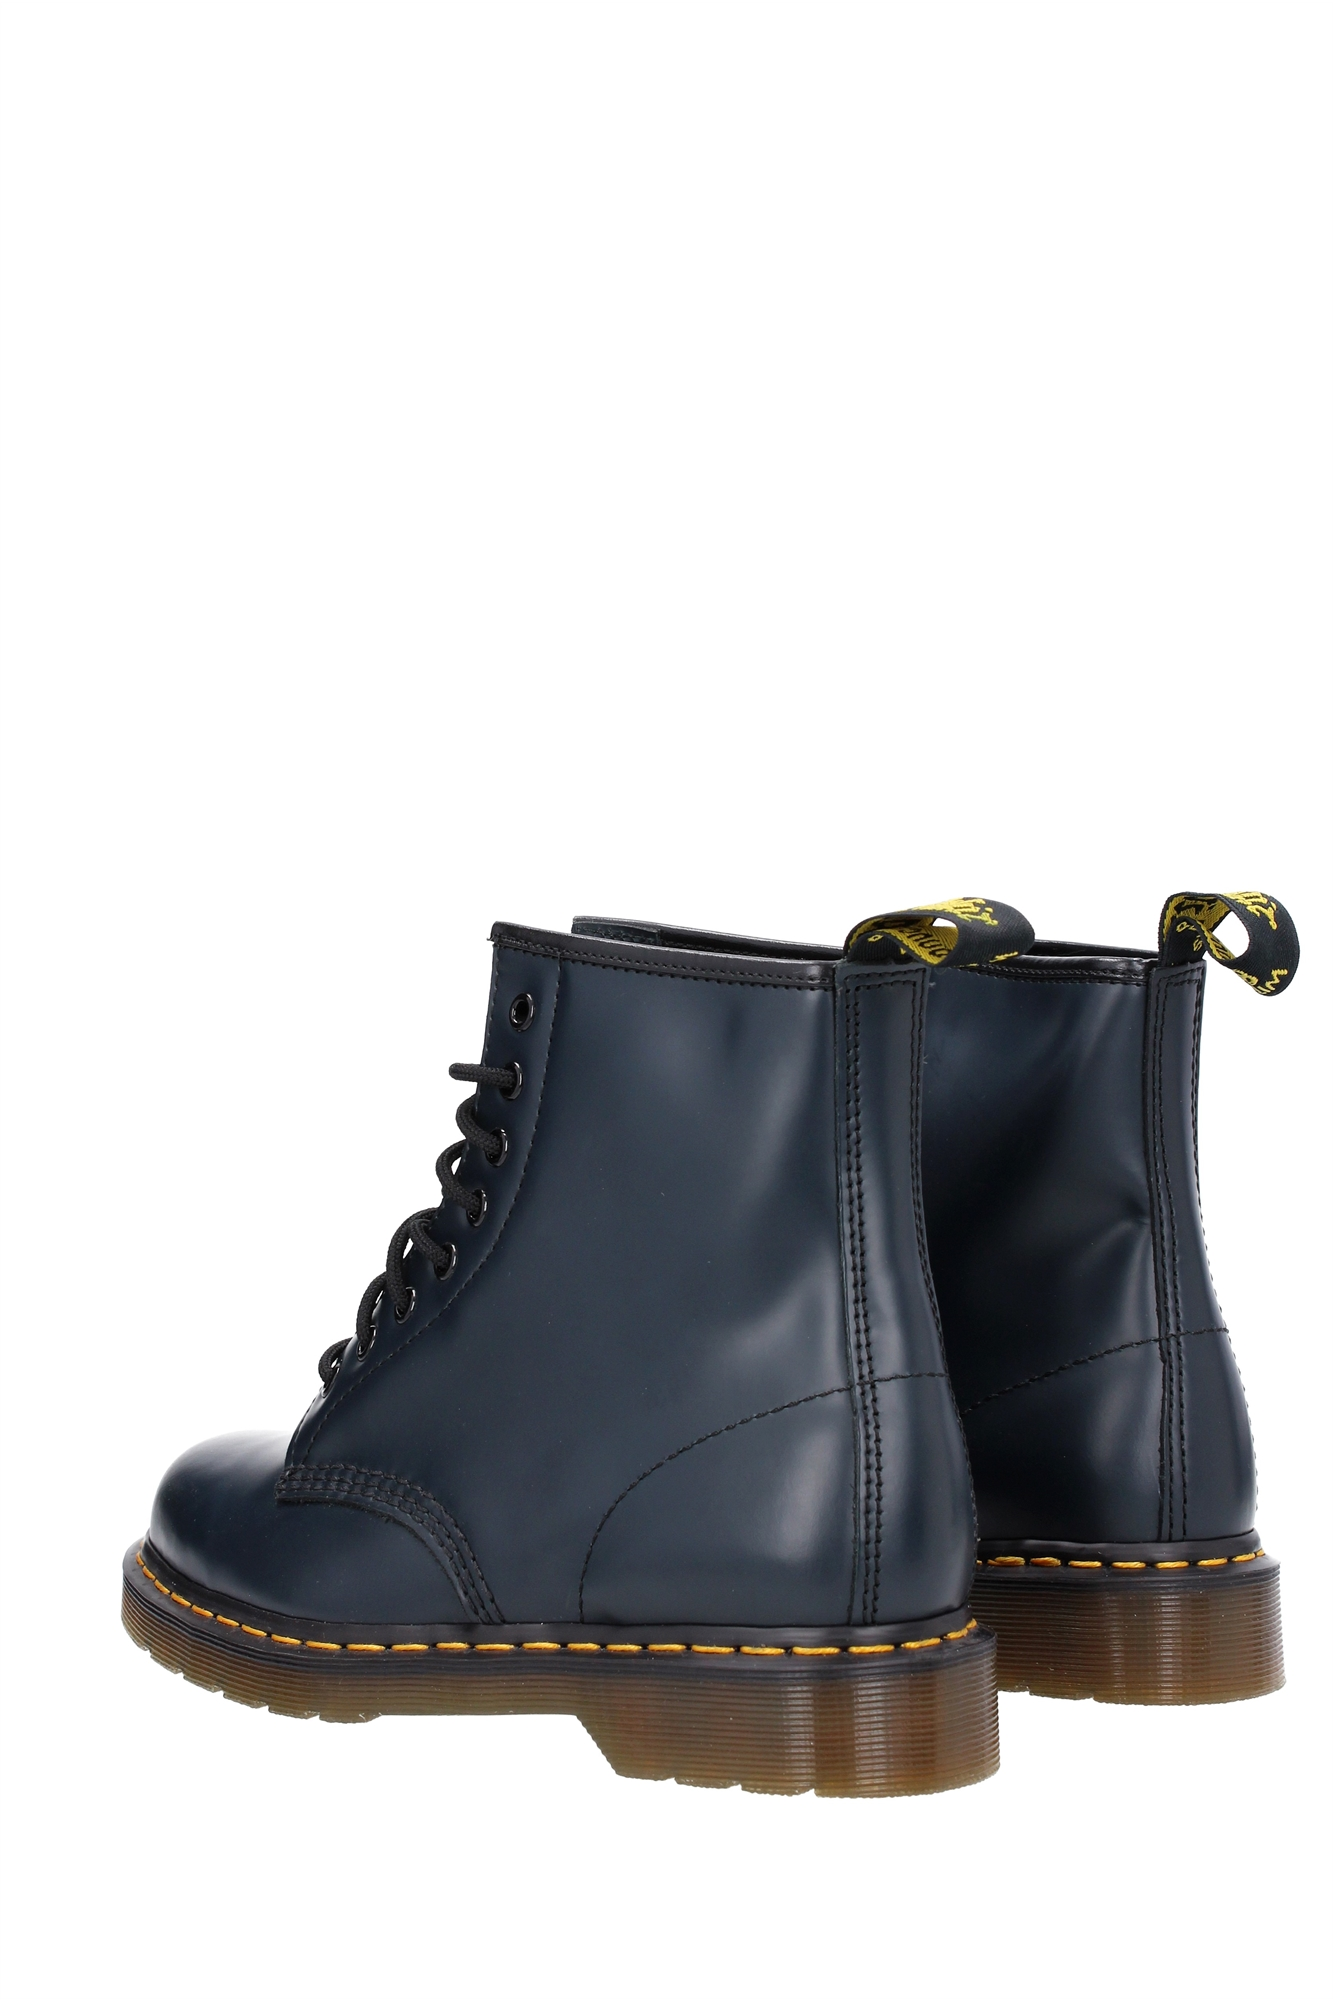 stiefeletten dr martens herren leder blau. Black Bedroom Furniture Sets. Home Design Ideas